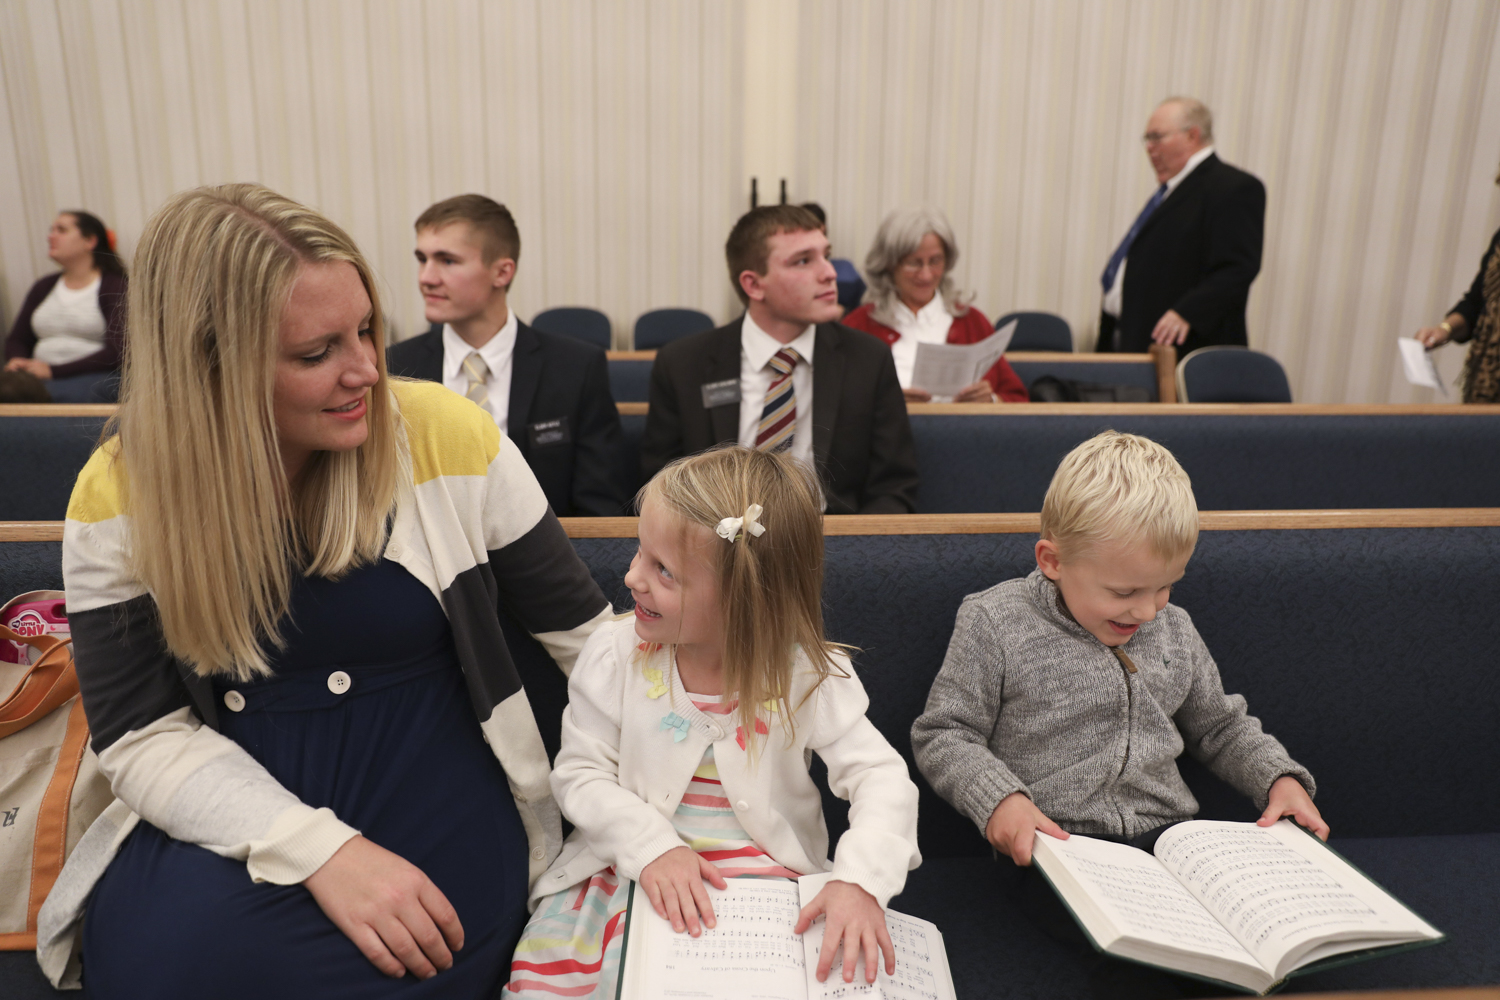 Courtney, Ashlyn, and Cooper look through a song book before the sacrament meeting begins on Oct. 23, 2016 at The church of Jesus Christ of Latter-day Saints Geneseo ward, Rochester Stake. The Larson's are Mormon instilling the word of God, good faith, and importance of family into their children.